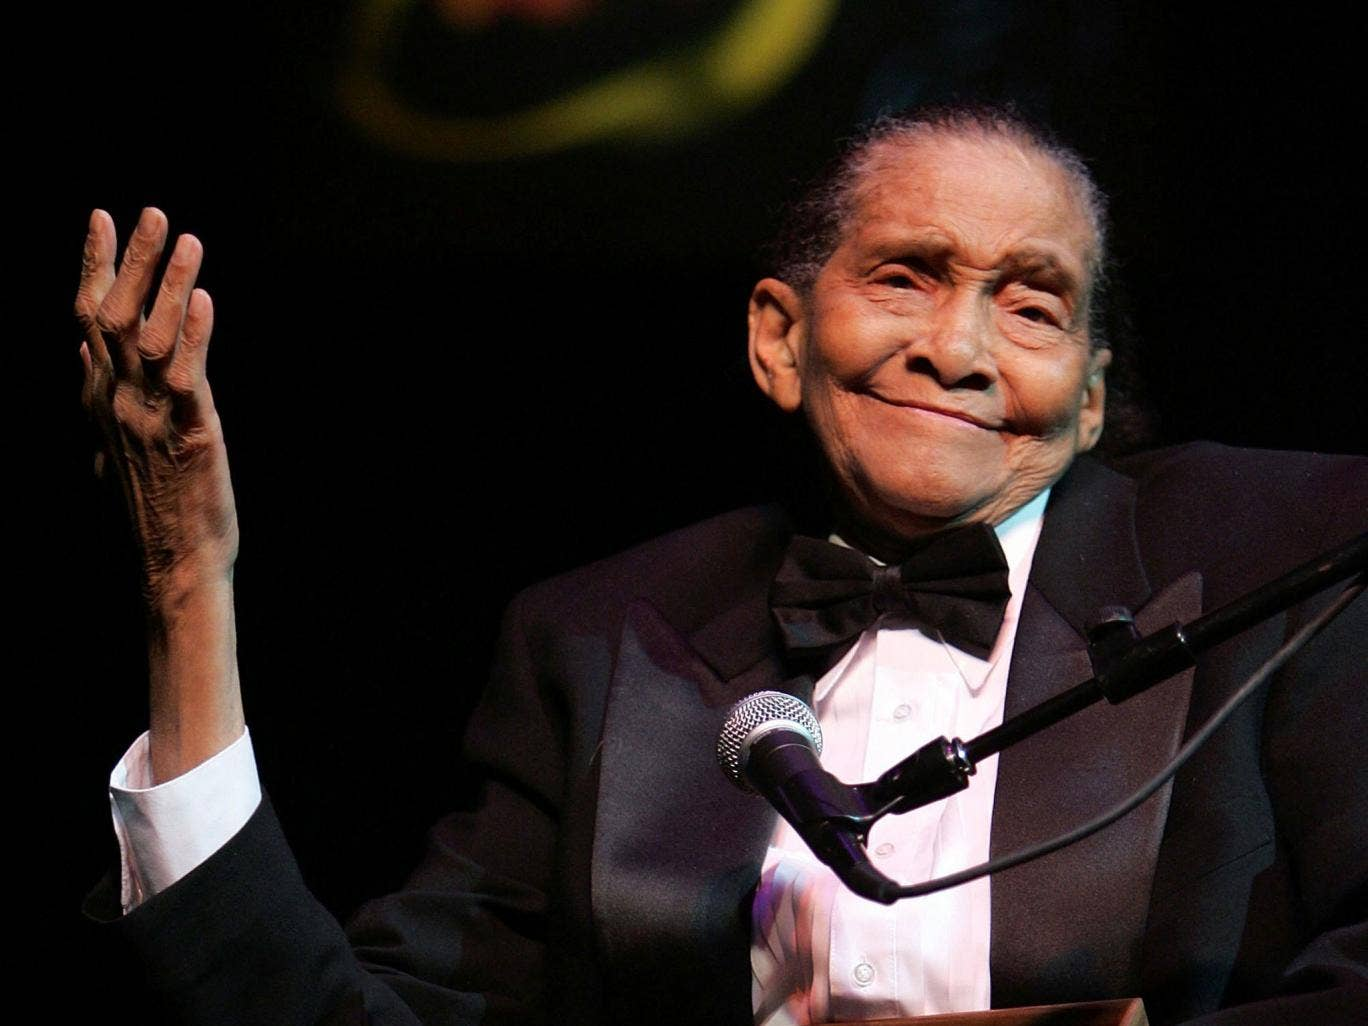 Jimmy Scott speaks after accepting a NEA Jazz Master award during the 17th Annual NEA Jazz Masters awards and concert on 12 January, 2007, in New York City